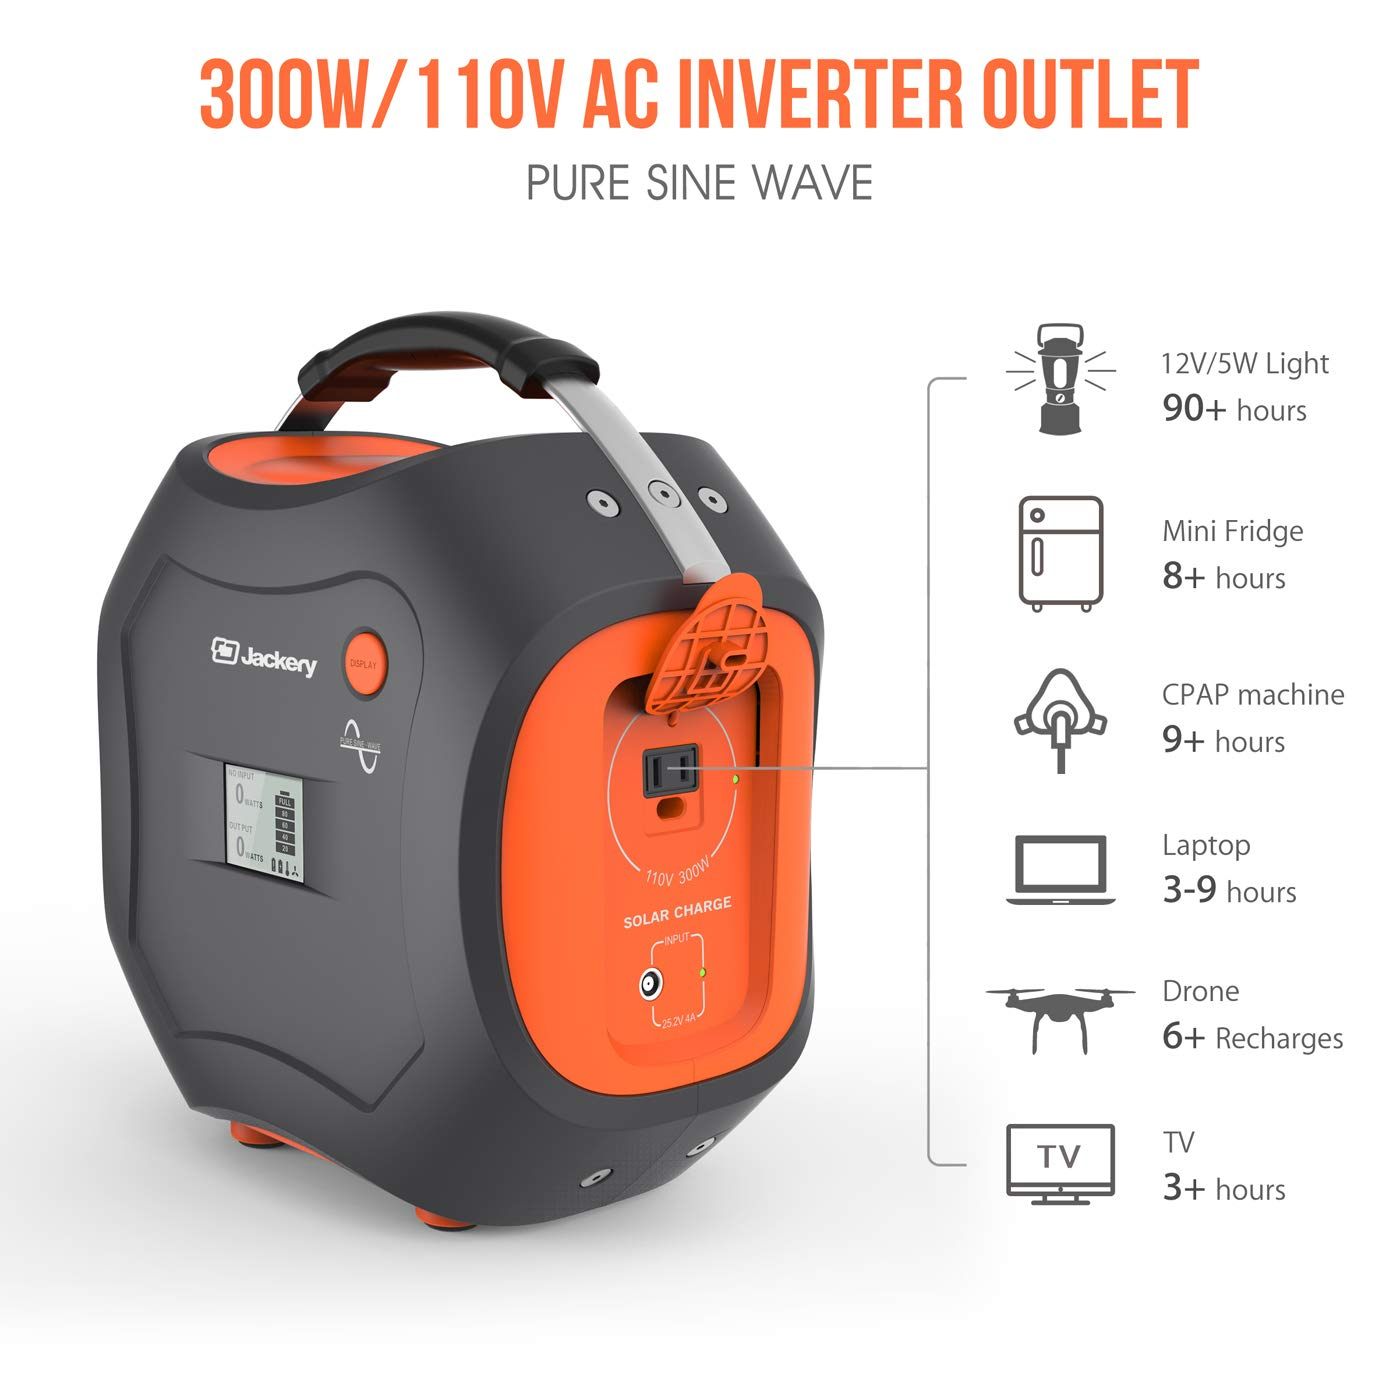 Cpap Battery Backup Powerpro 500 Portable Power Electrical Wiring In The Home Ac And Well Pump Wire Colors Station Jackery 500wh Generator Lithium Pack With 110v 300w 500w Peak Pure Sine Wave Inverter Outlet For